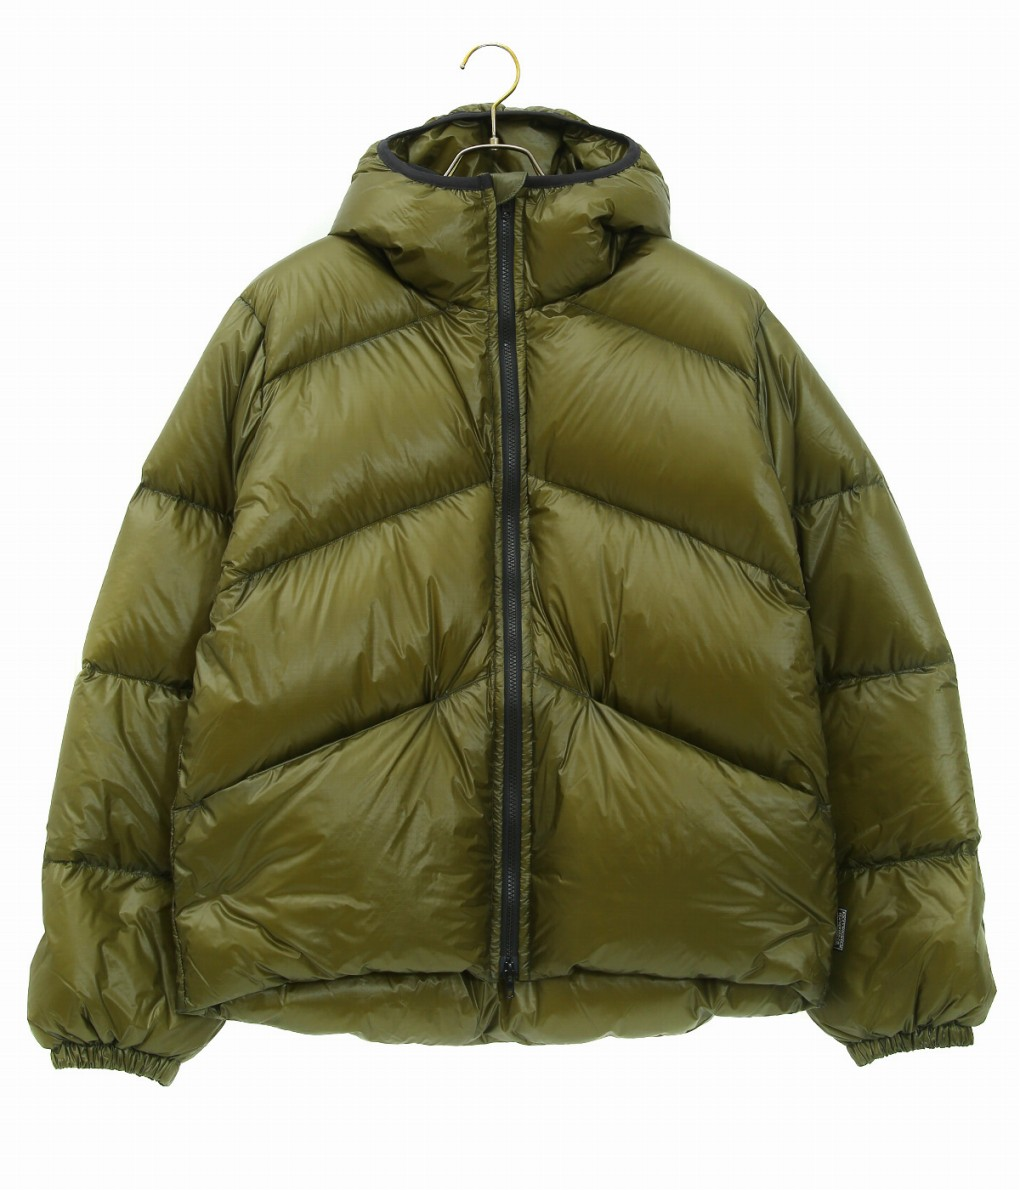 ROCKY MOUNTAIN FEATHER BED / ロッキーマウンテンフェザーベッド : NS DOWN PARKA / 全2色 : ダウン ロッキーマウンテンダウン ダウンジャケット ダウンパーカー メンズ : 200-192-33 【STD】